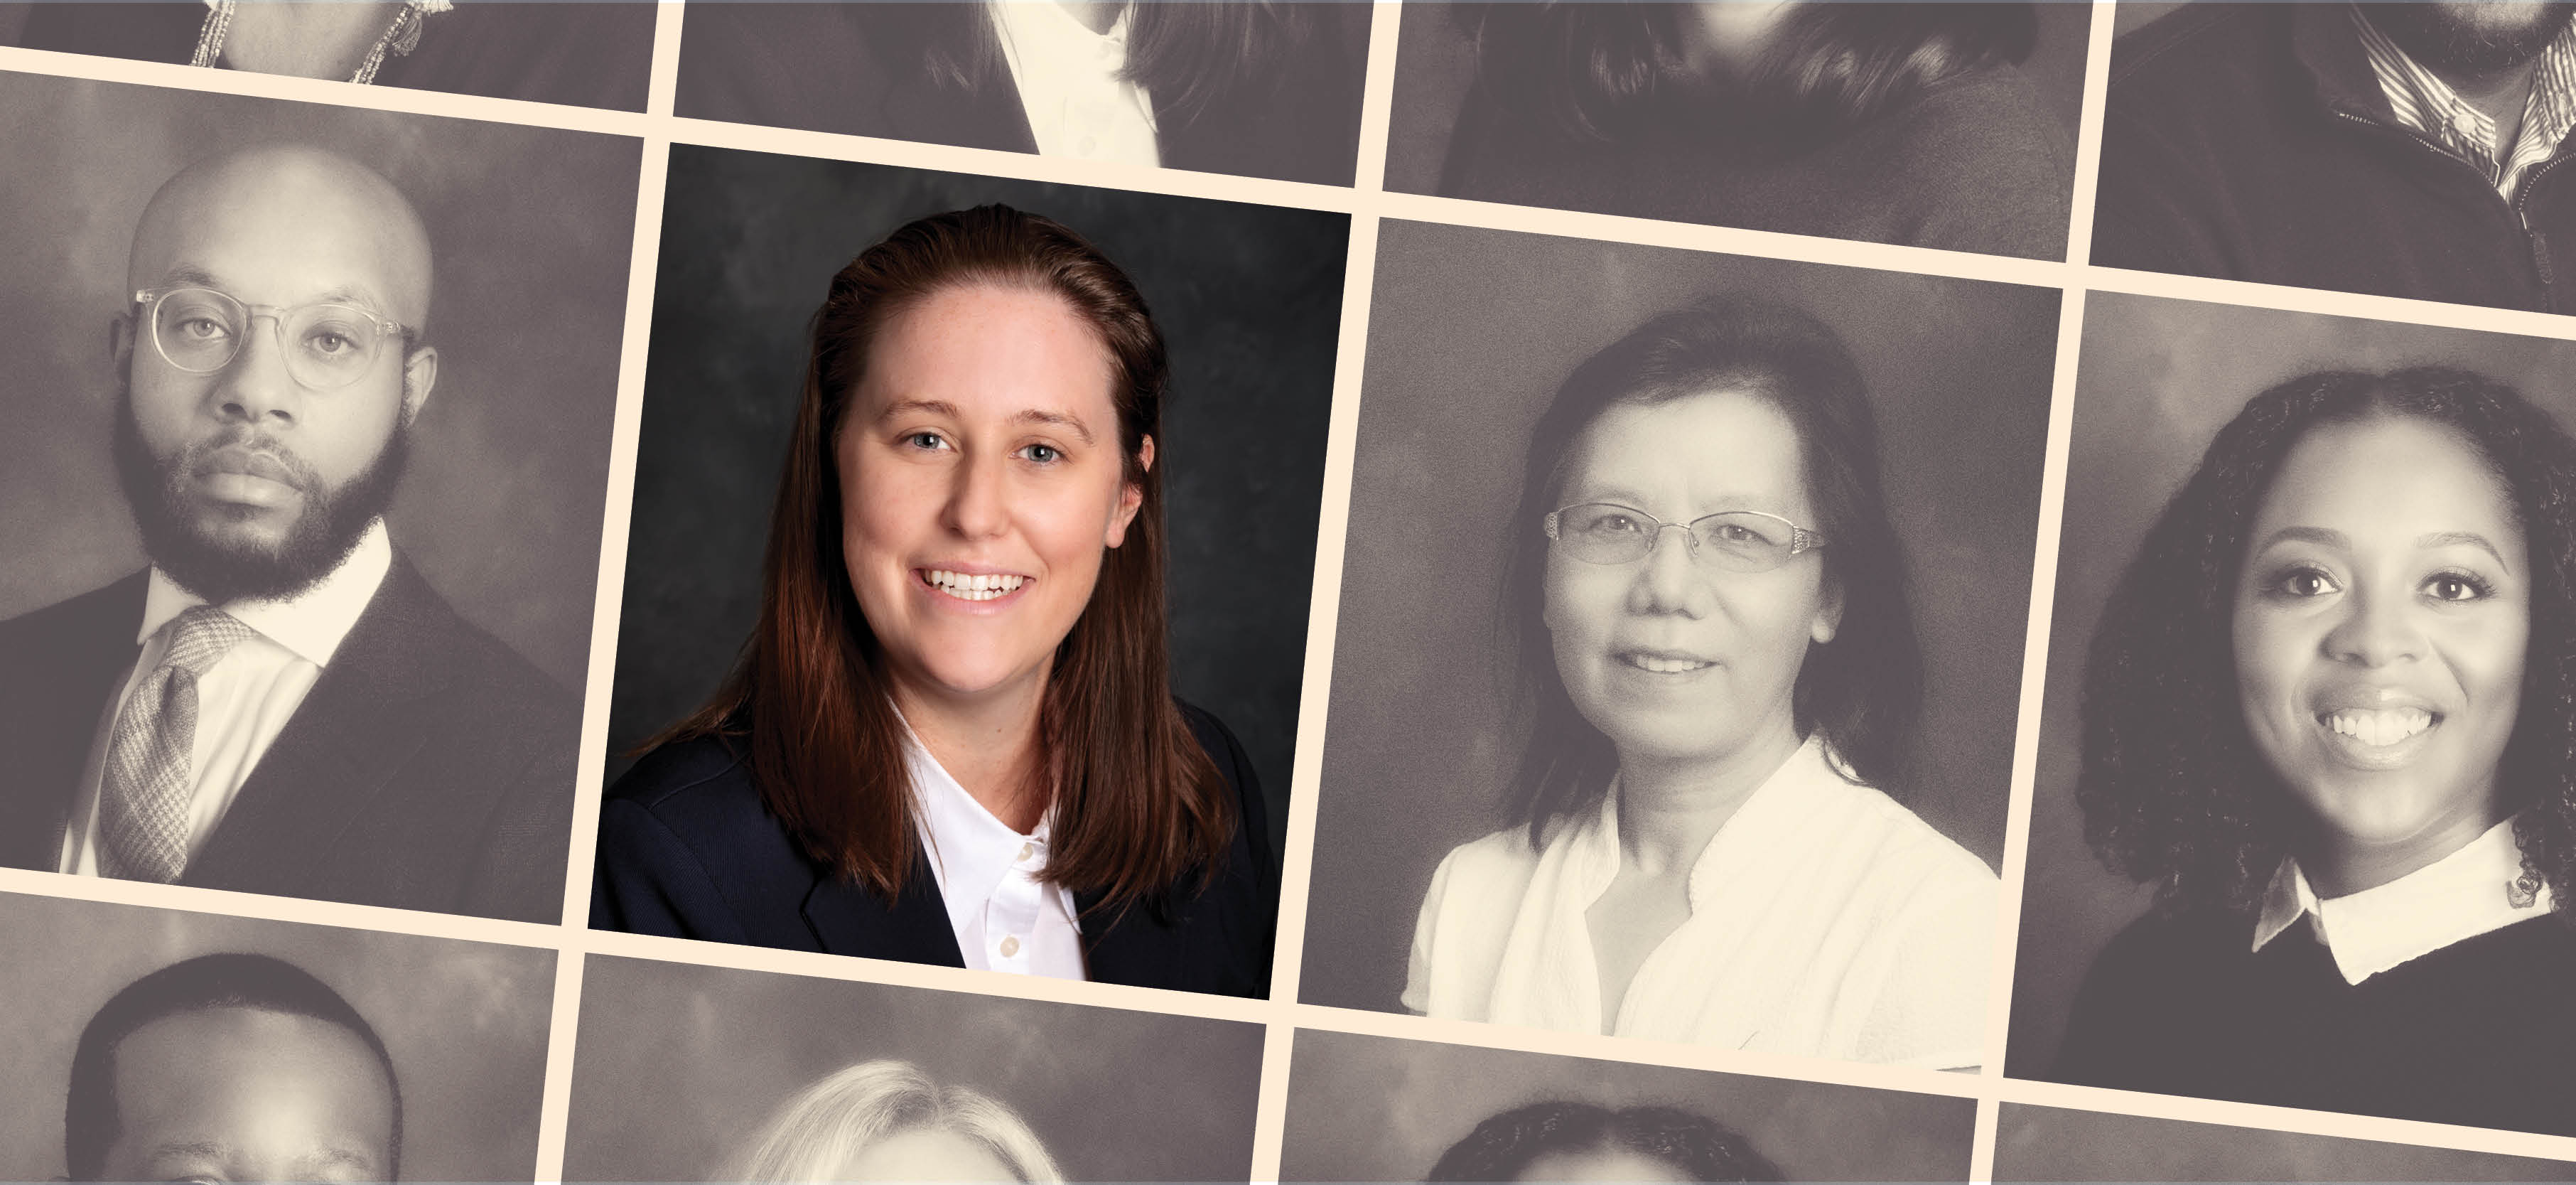 A grid of photos shows new faculty members in black and white in the style of a high school yearbook. Featured faculty member Collen Clark is in color.